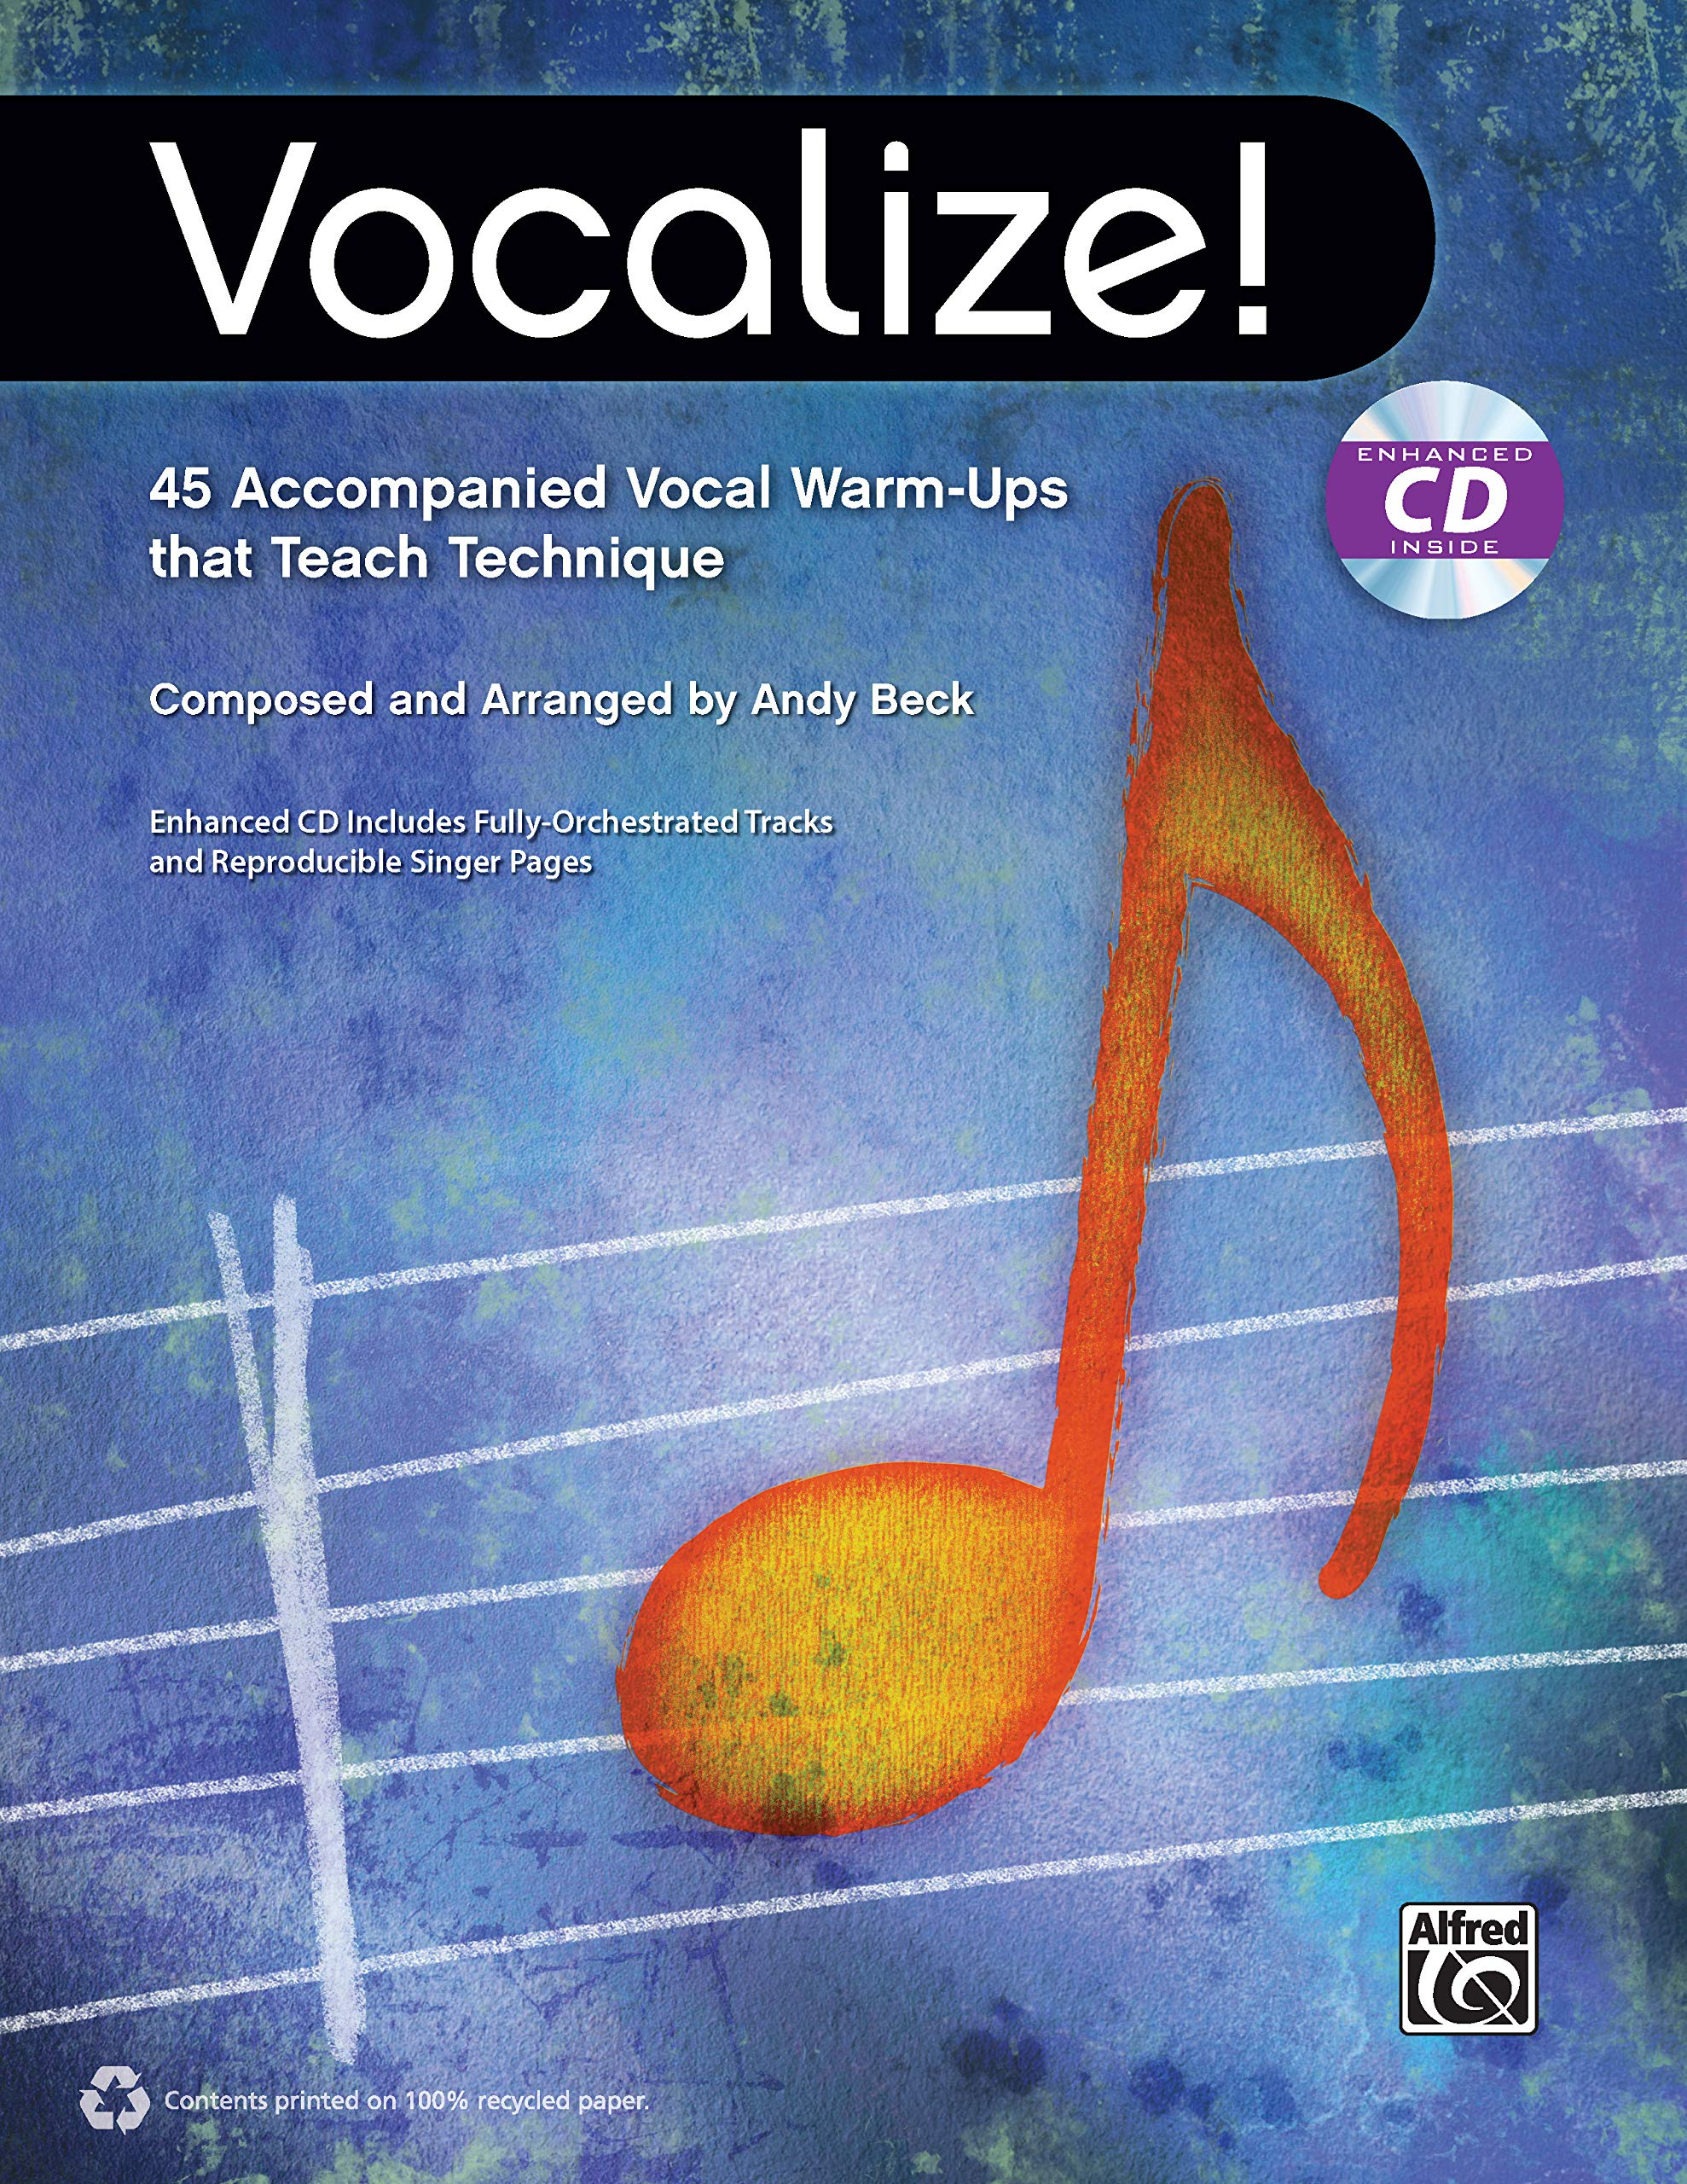 Vocalize!: 45 Accompanied Vocal Warm-Ups That Teach